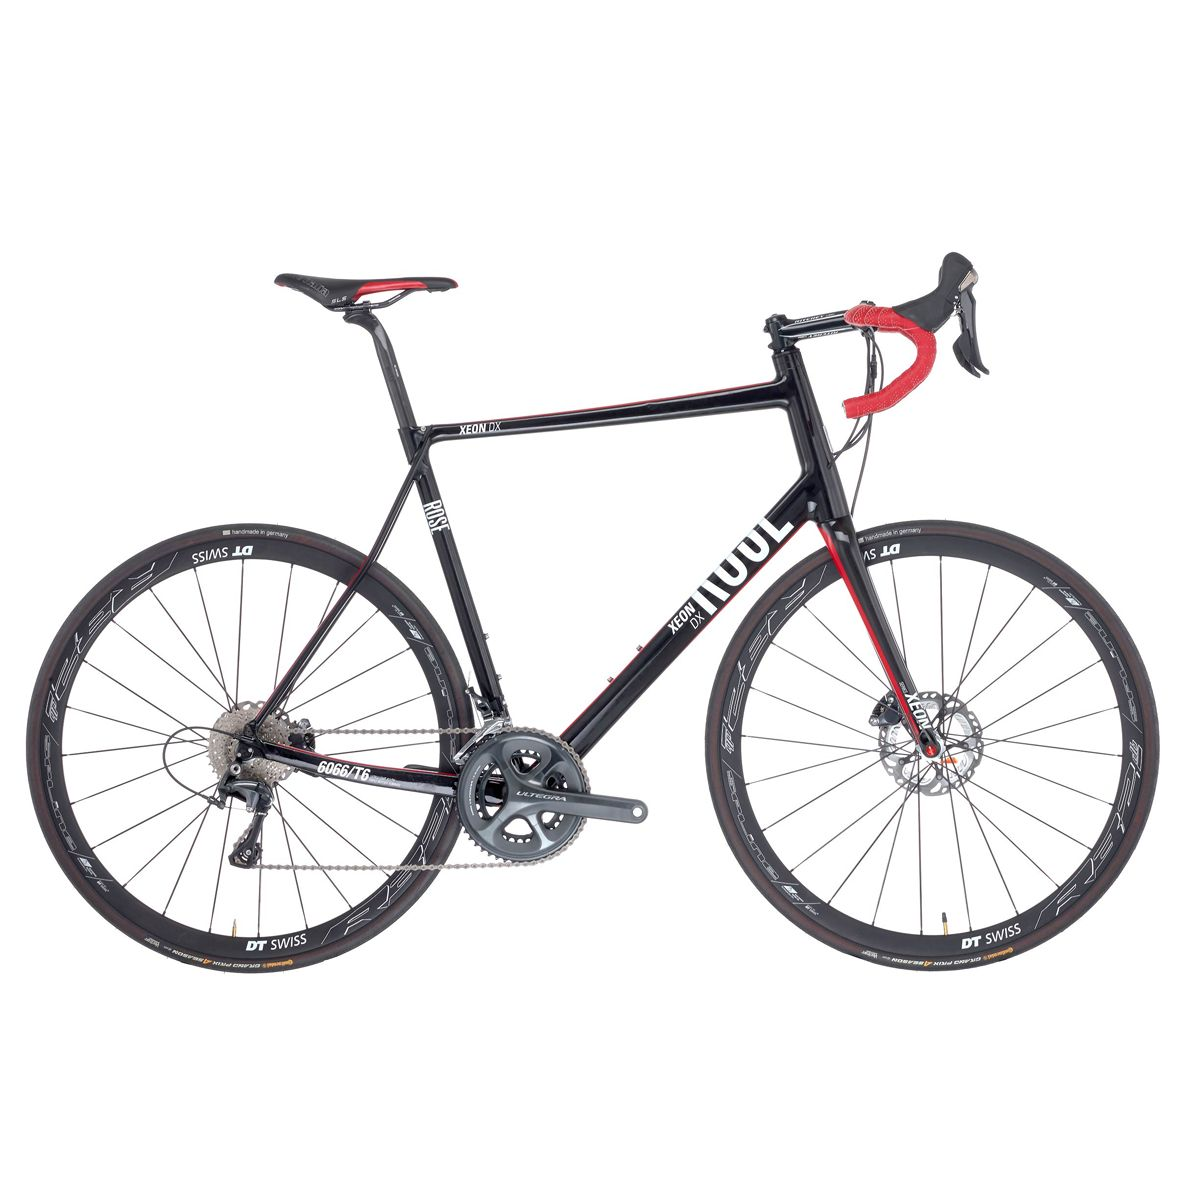 XEON DX ULTEGRA showroom bike 63cm